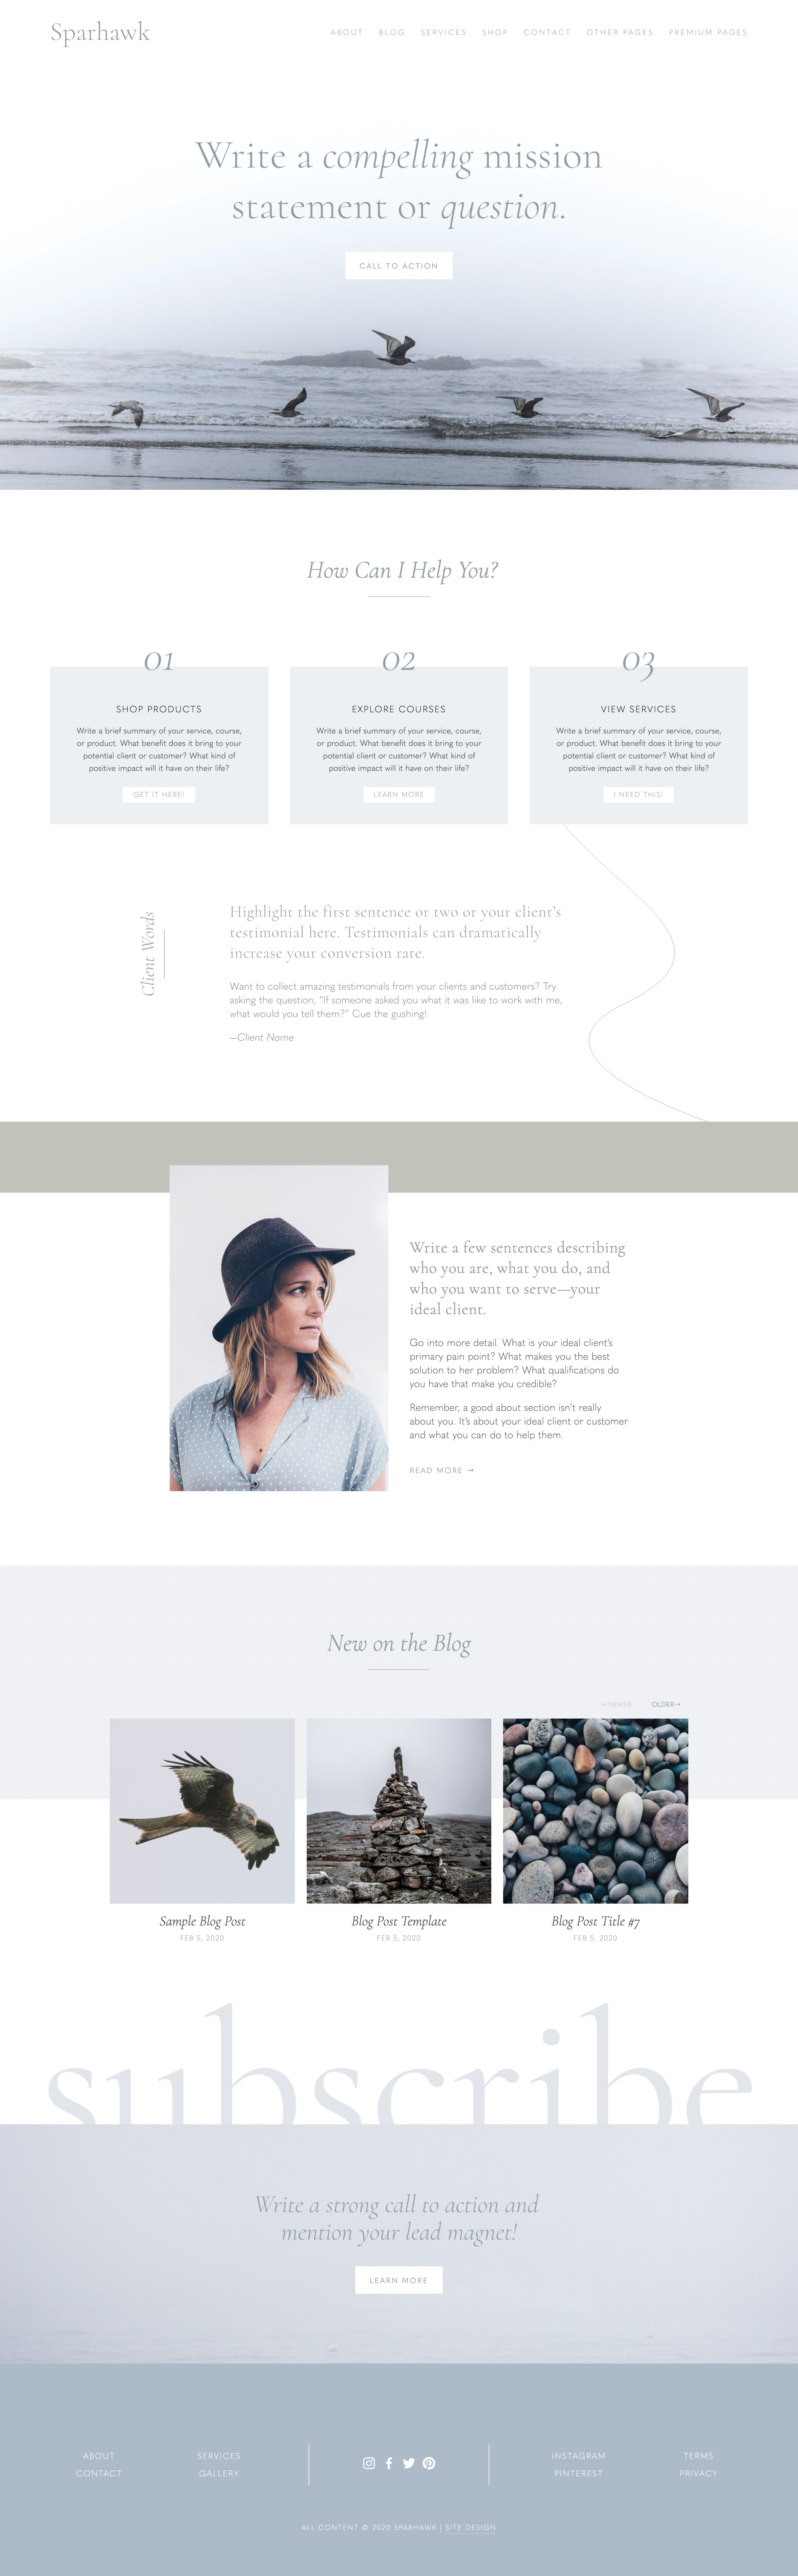 Squarespace Templates And Design Kits For Sale Sqspthemes Com